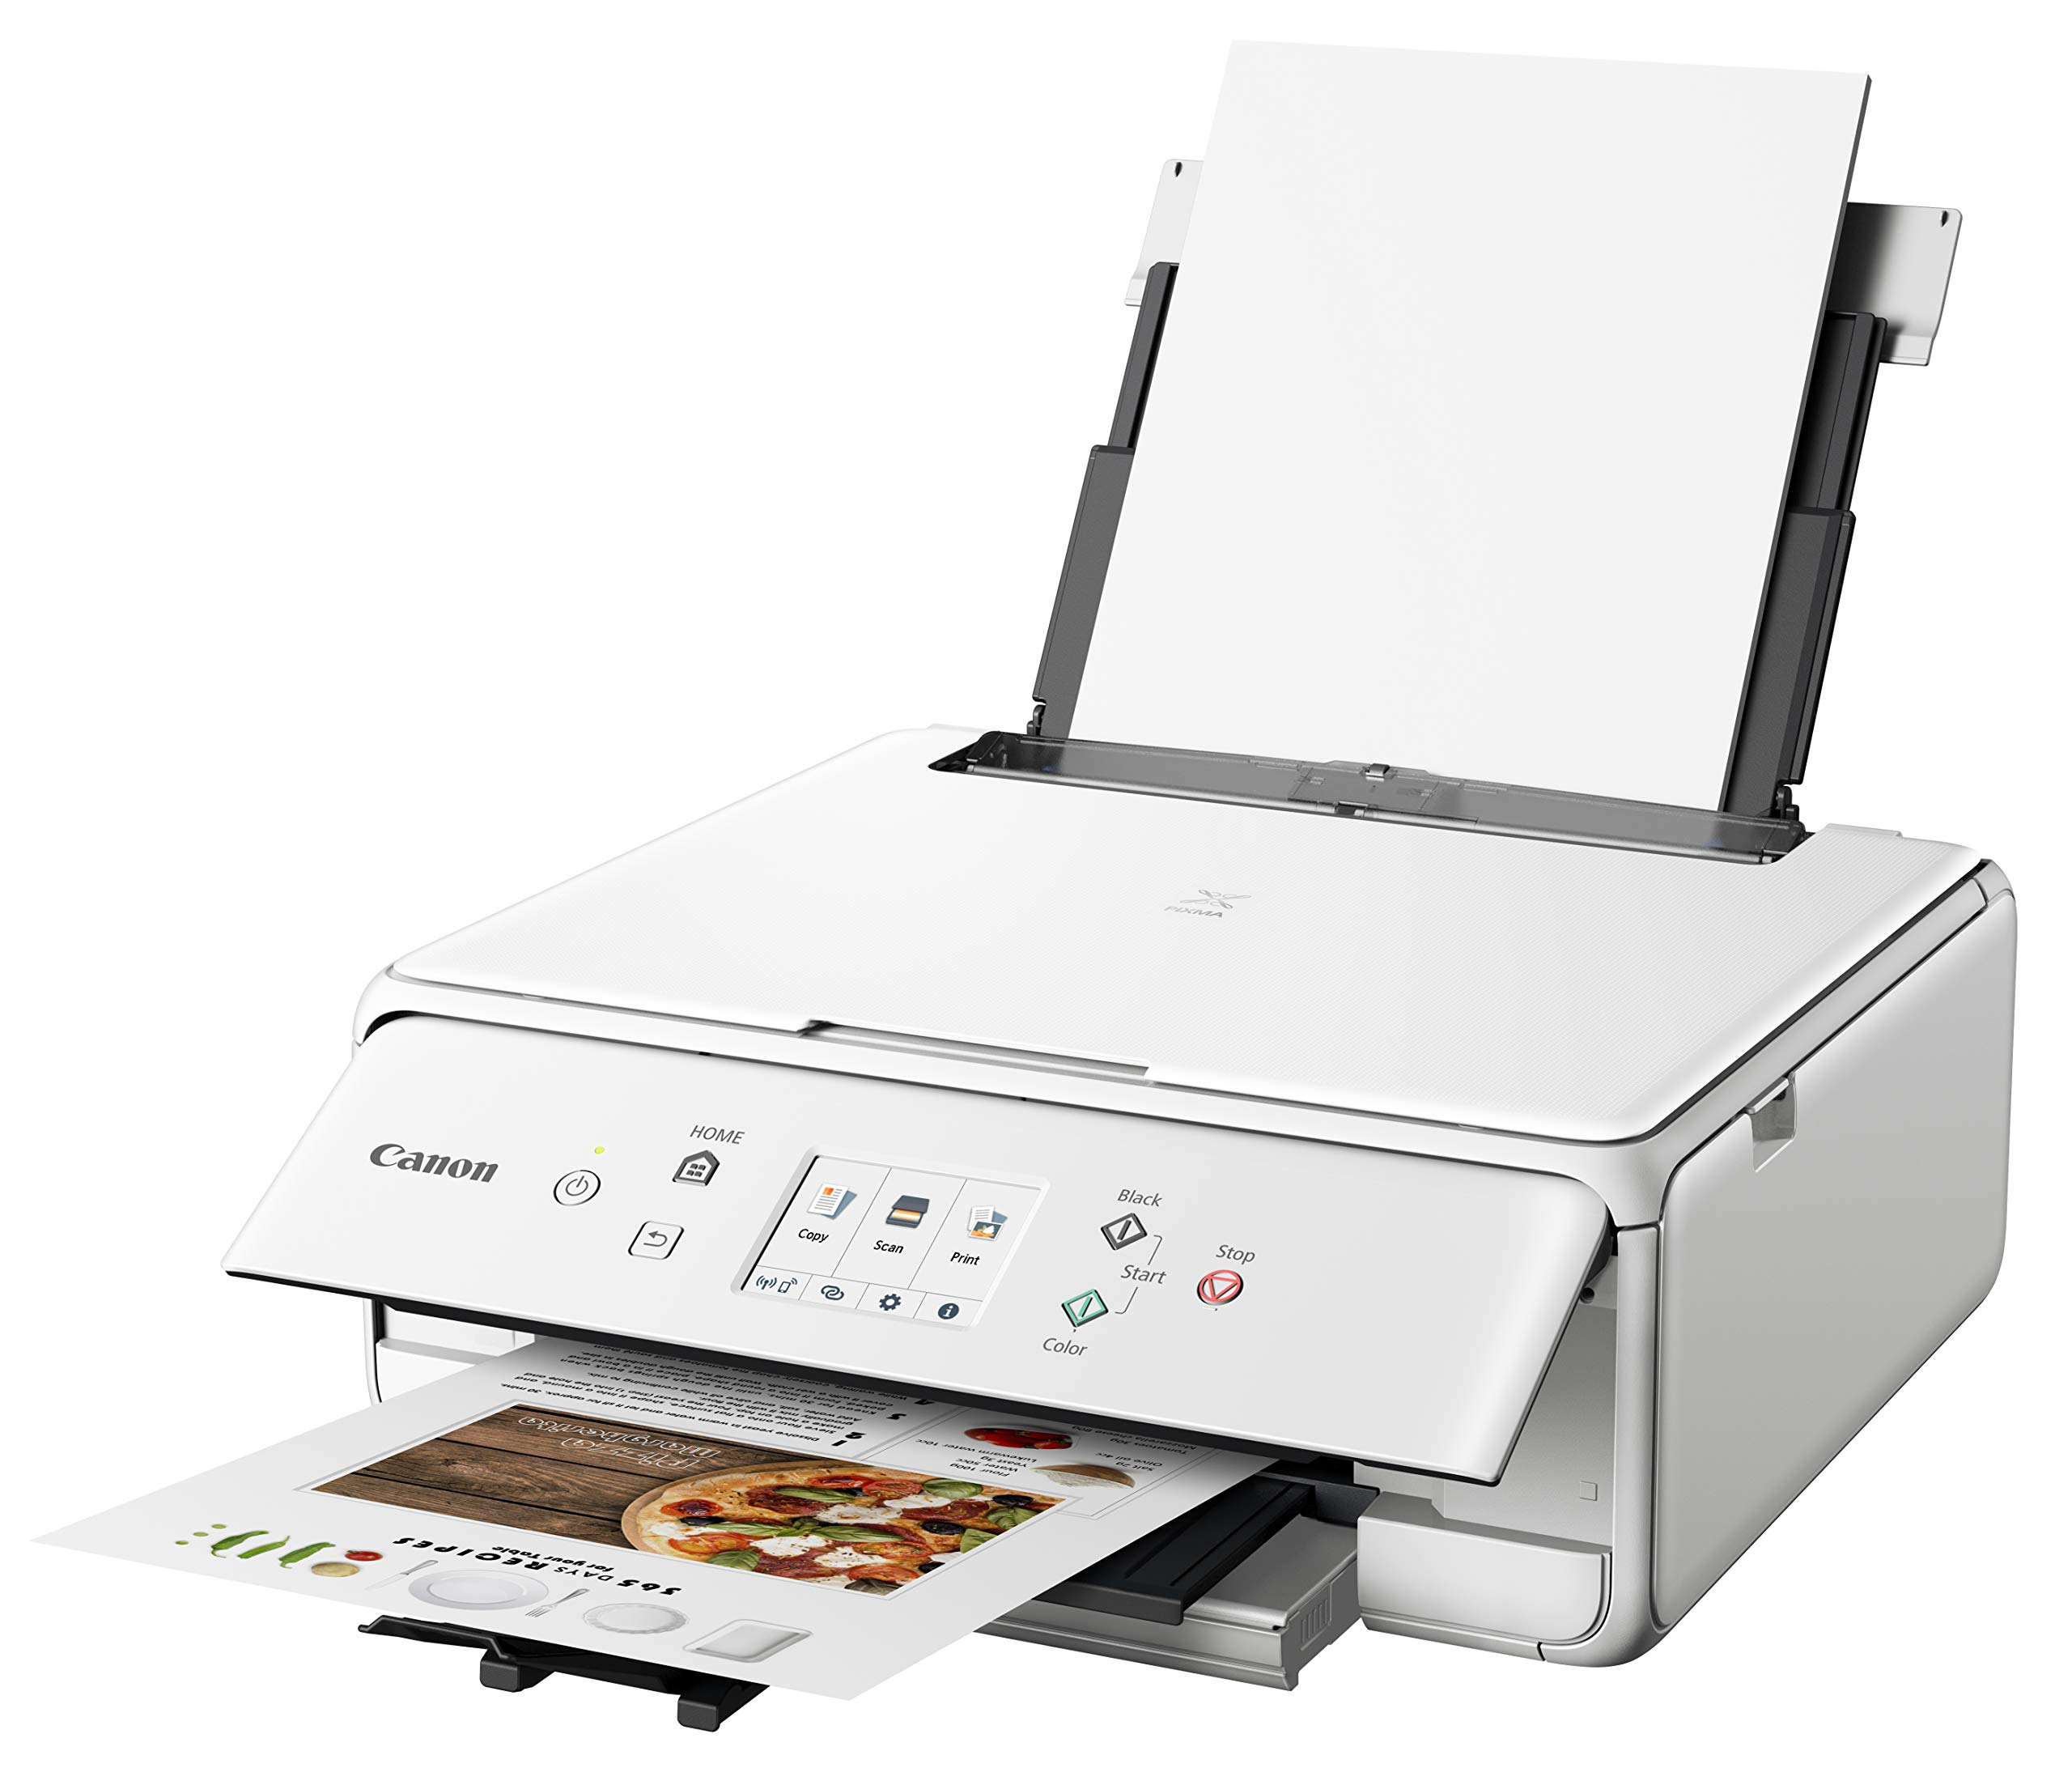 Canon PIXMA TS6220 Wireless All in One Printer with Mobile Printing, White by Canon (Image #3)